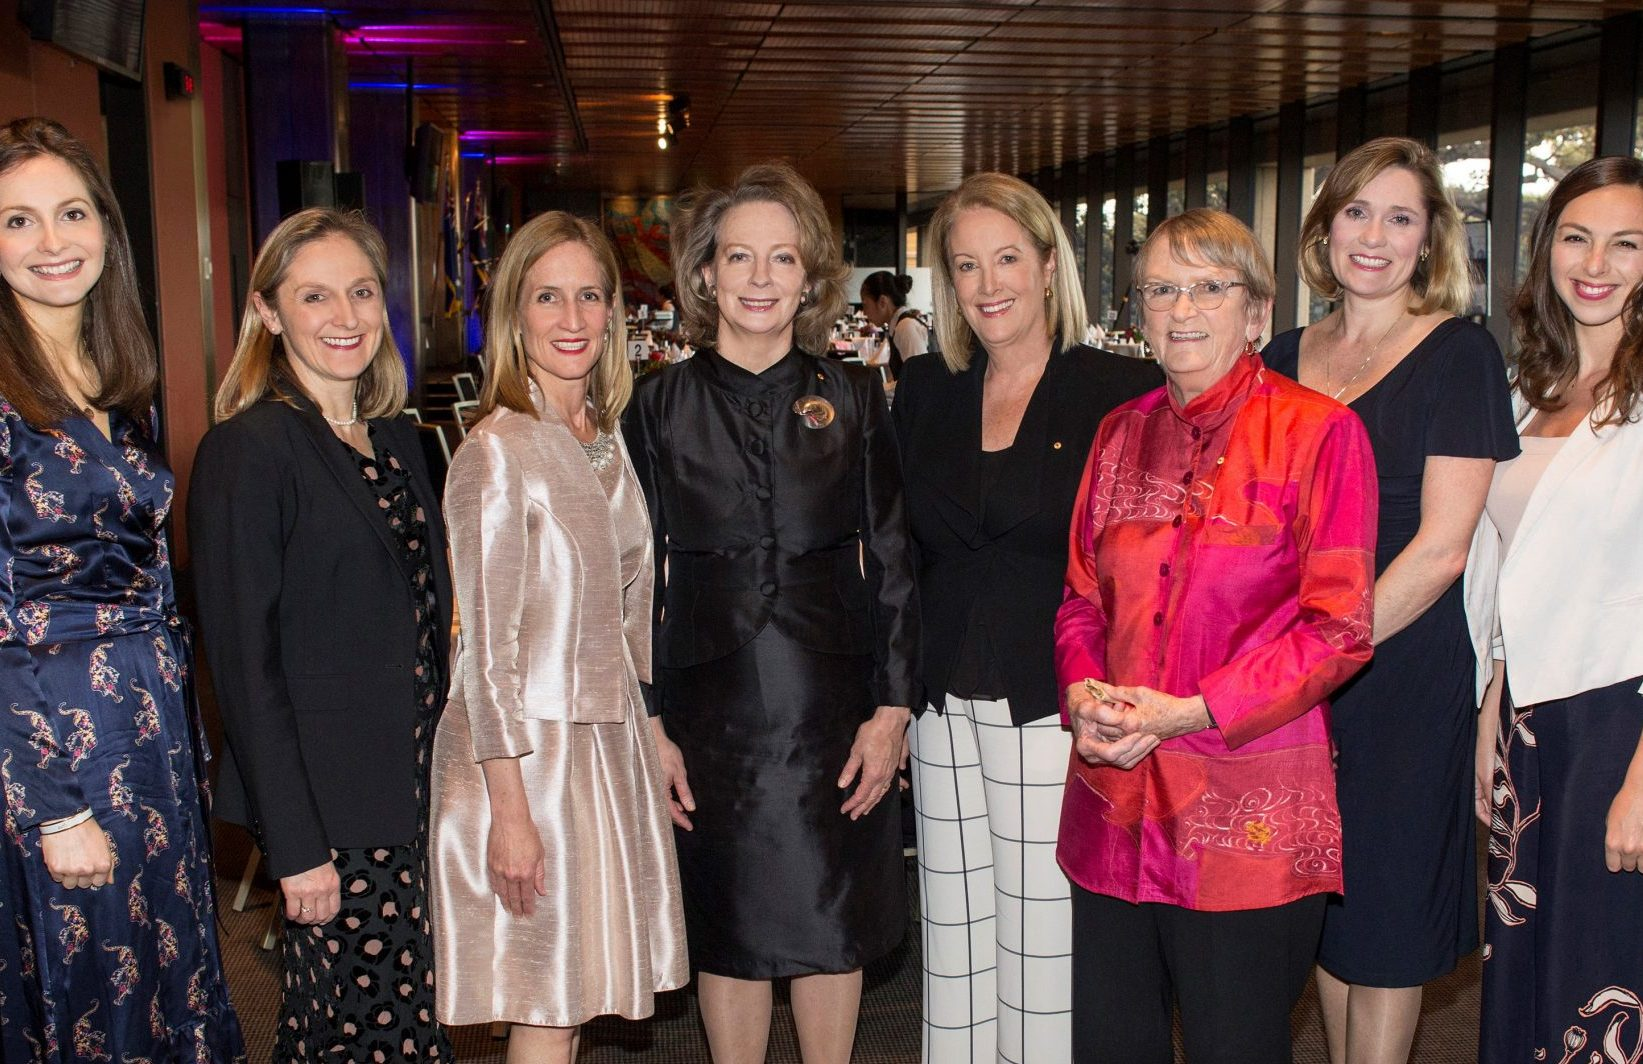 First 100 Years Of Women In Law Dinner, 26 November 2018